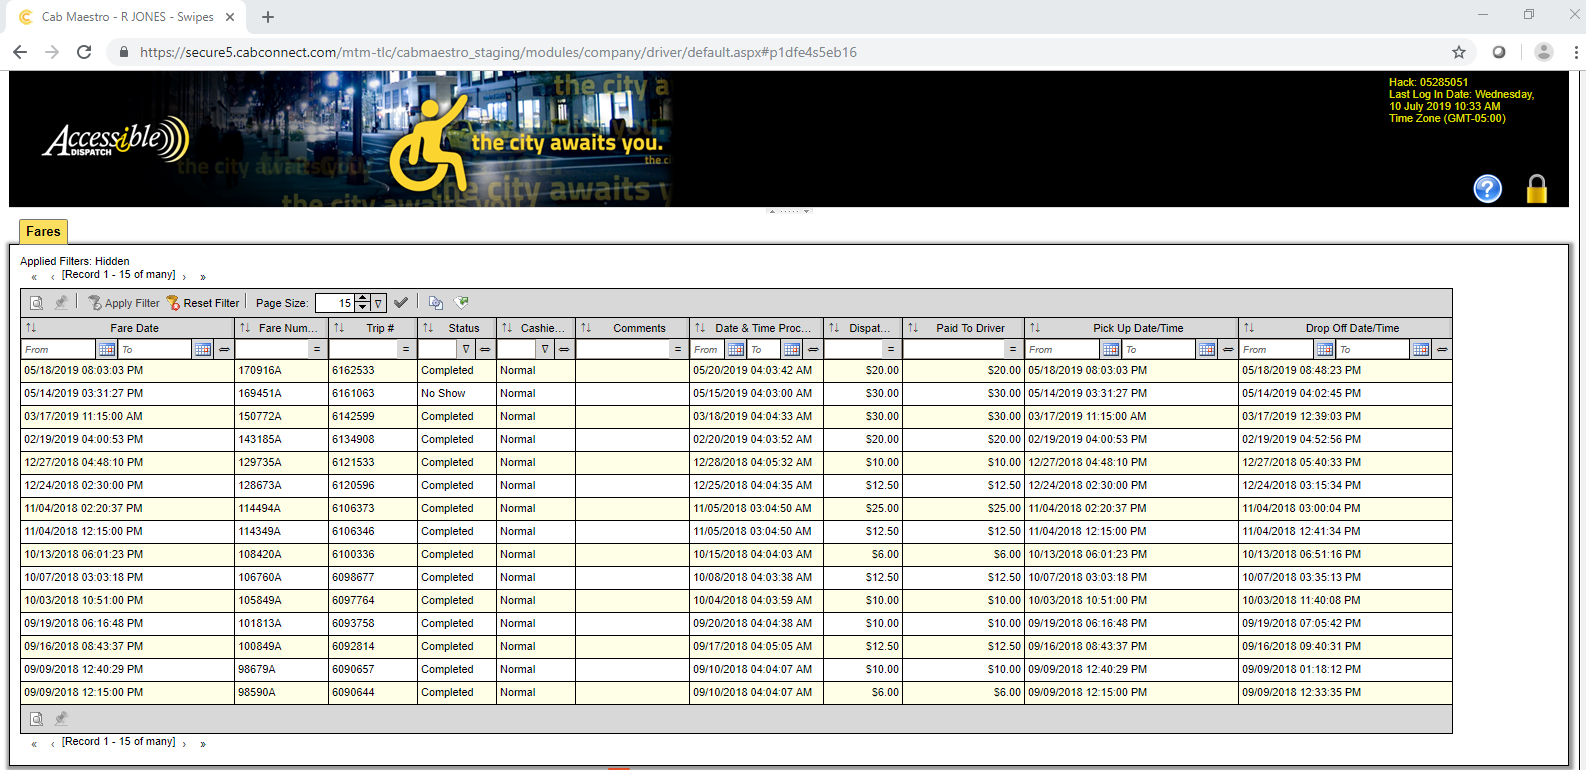 Screen shot of home page, which will show all trip related details on driver portal page.